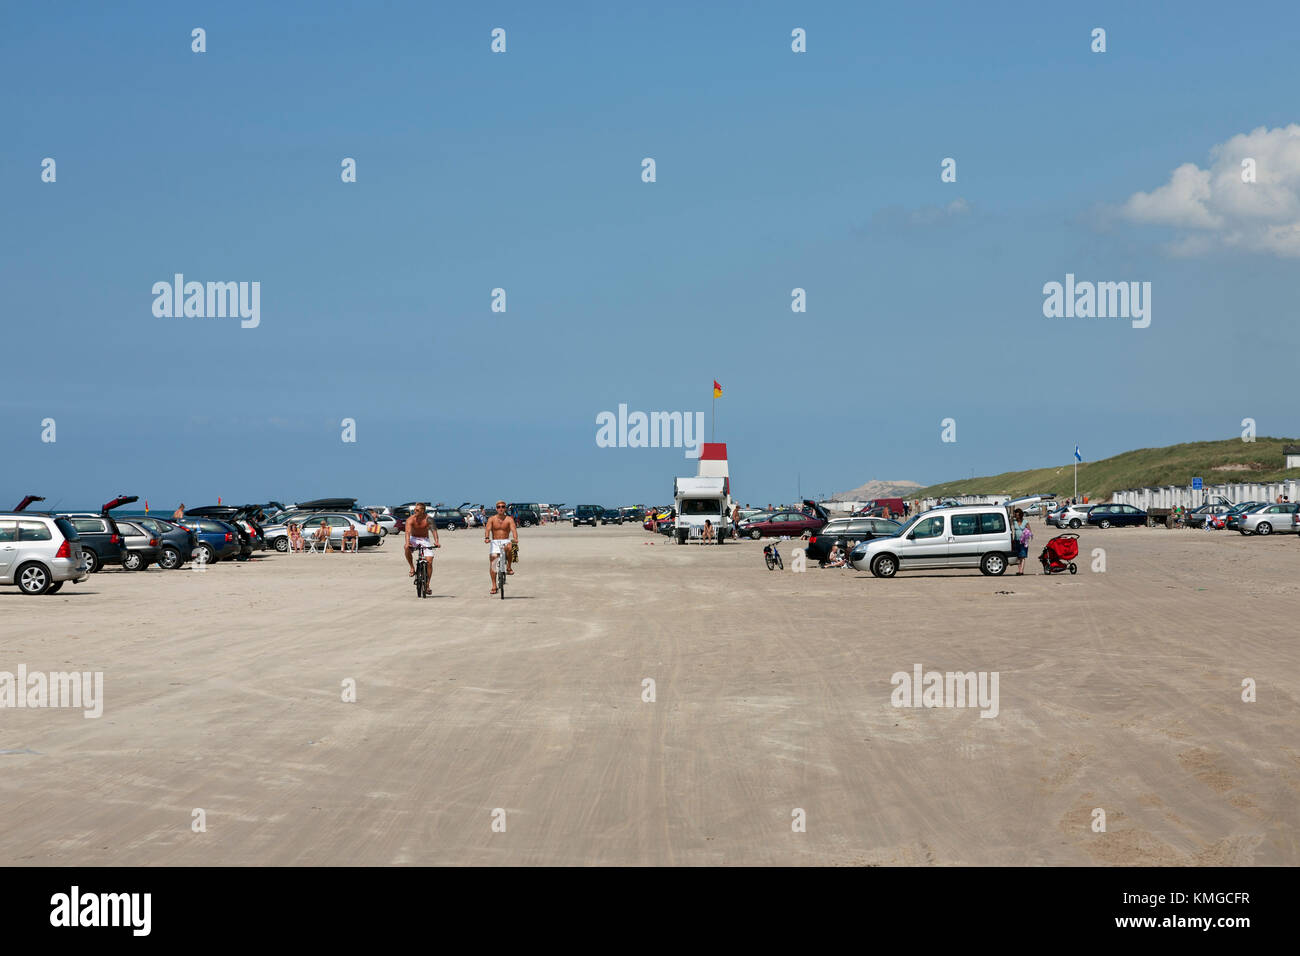 The famous beach at Blokhus in north-western Jutland, Denmark, where cars are allowed on the beach. - Stock Image